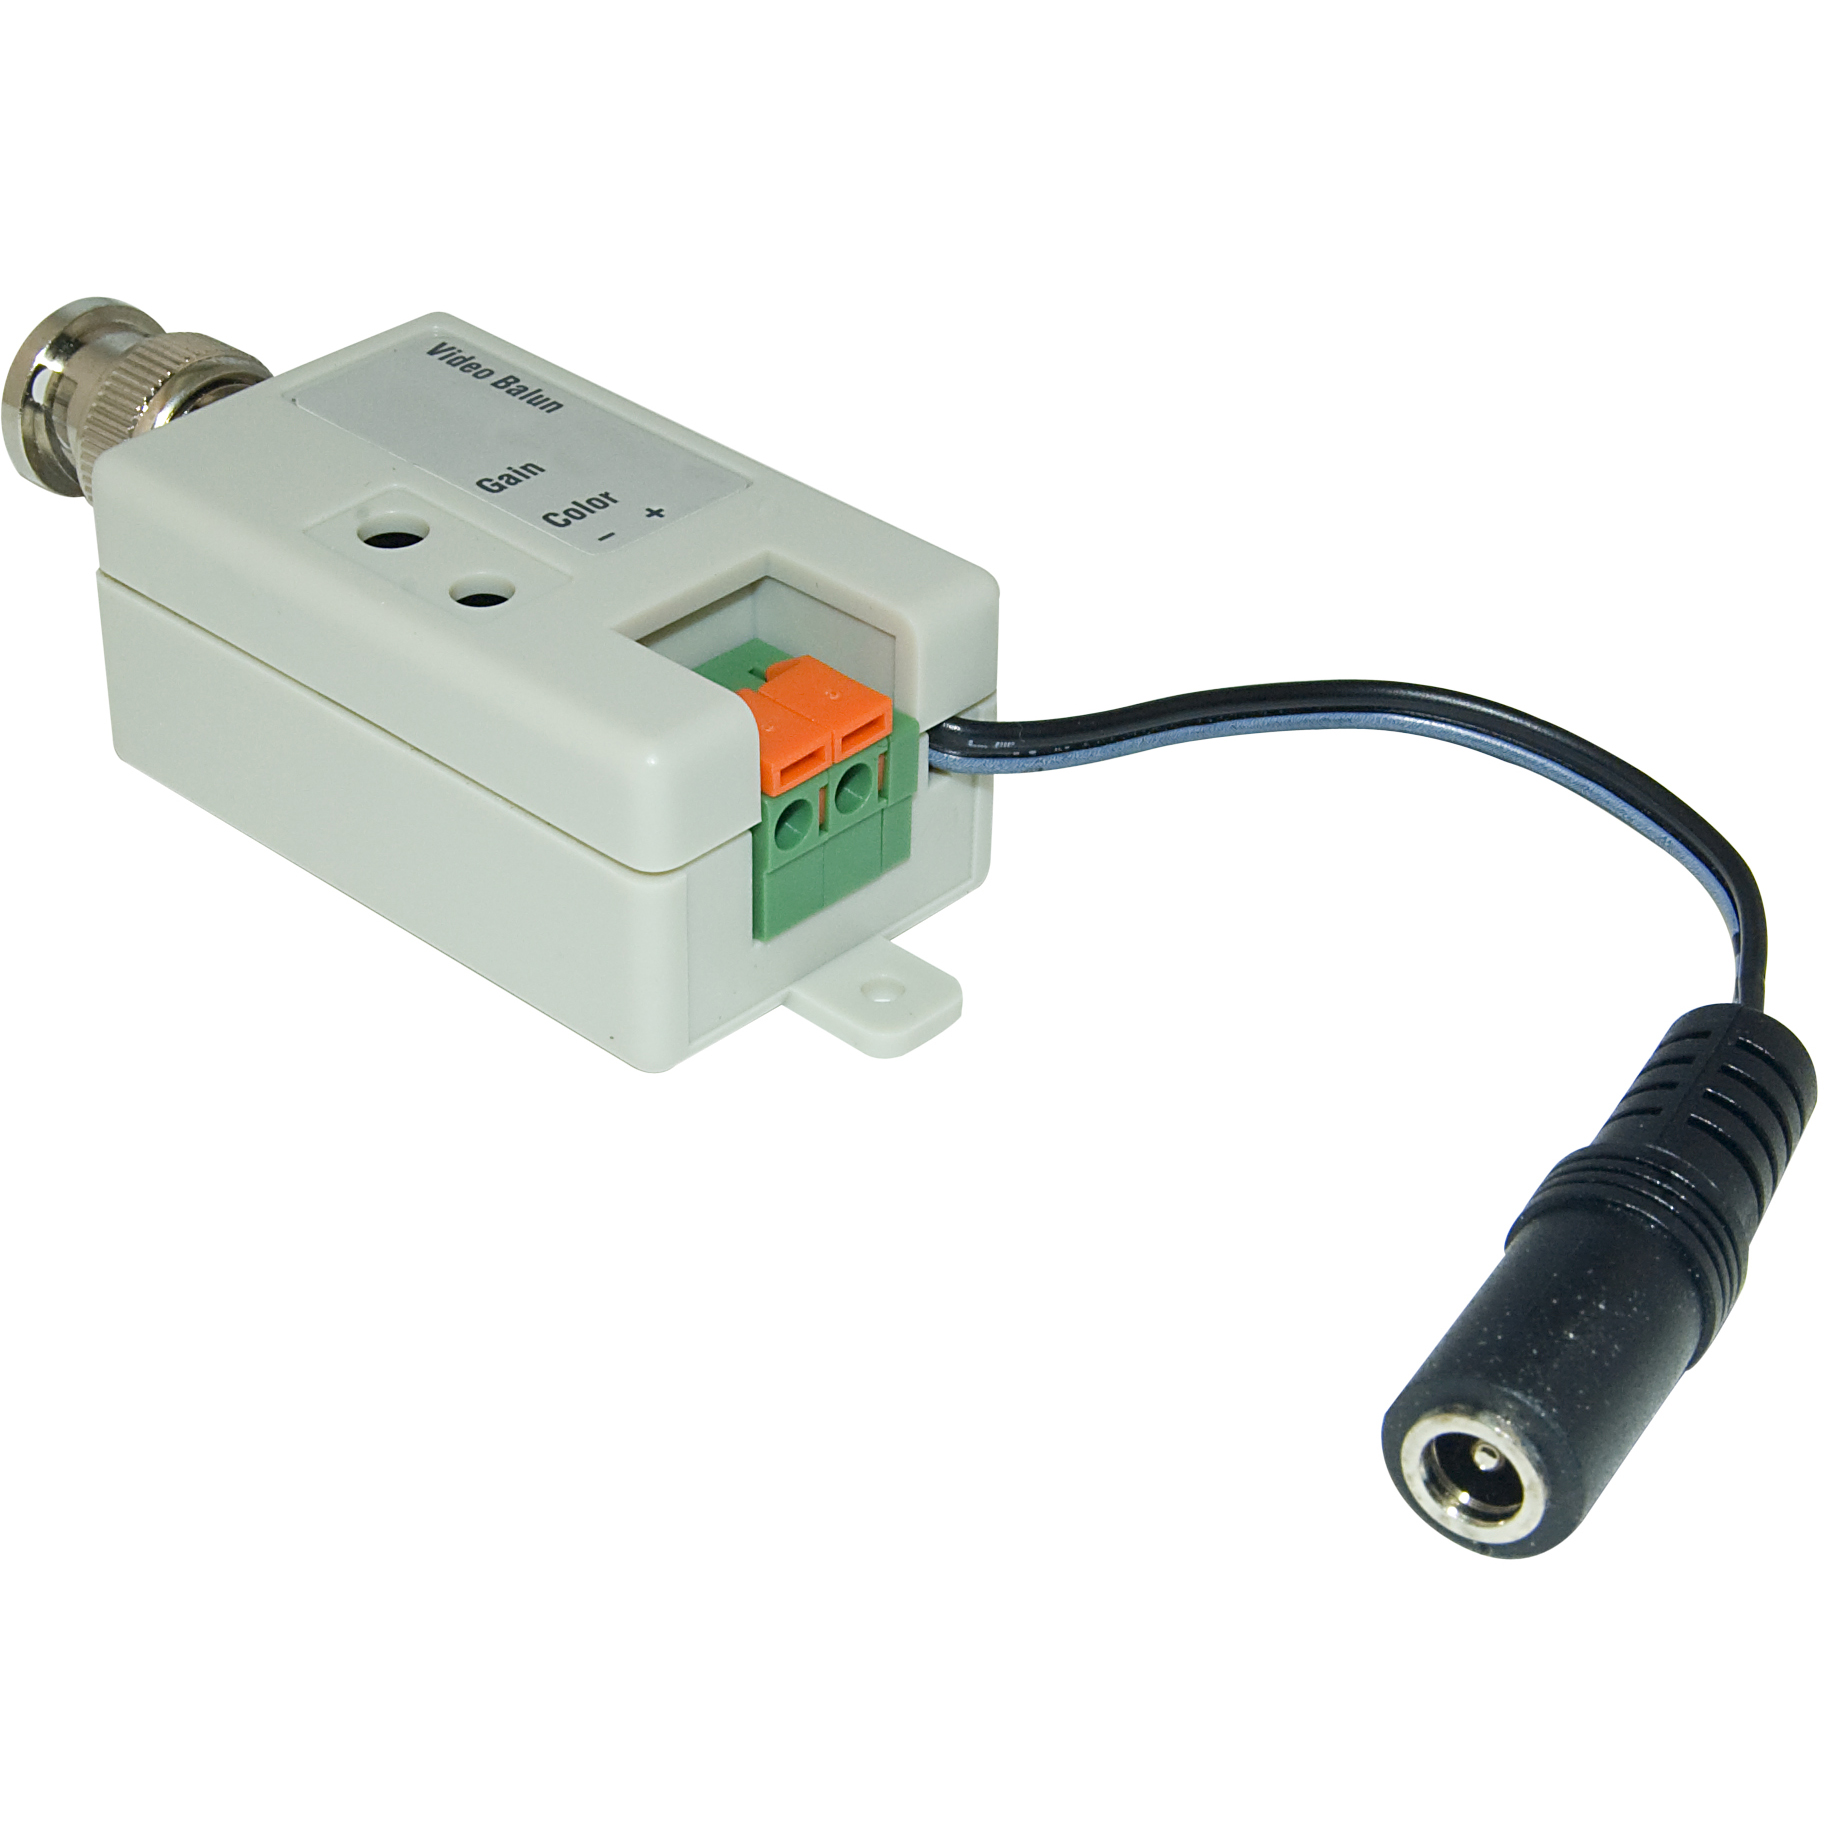 active video balun for monitor dvr side male bnc connector active video balun male bnc connector to bare wire terminals monitor dvr side